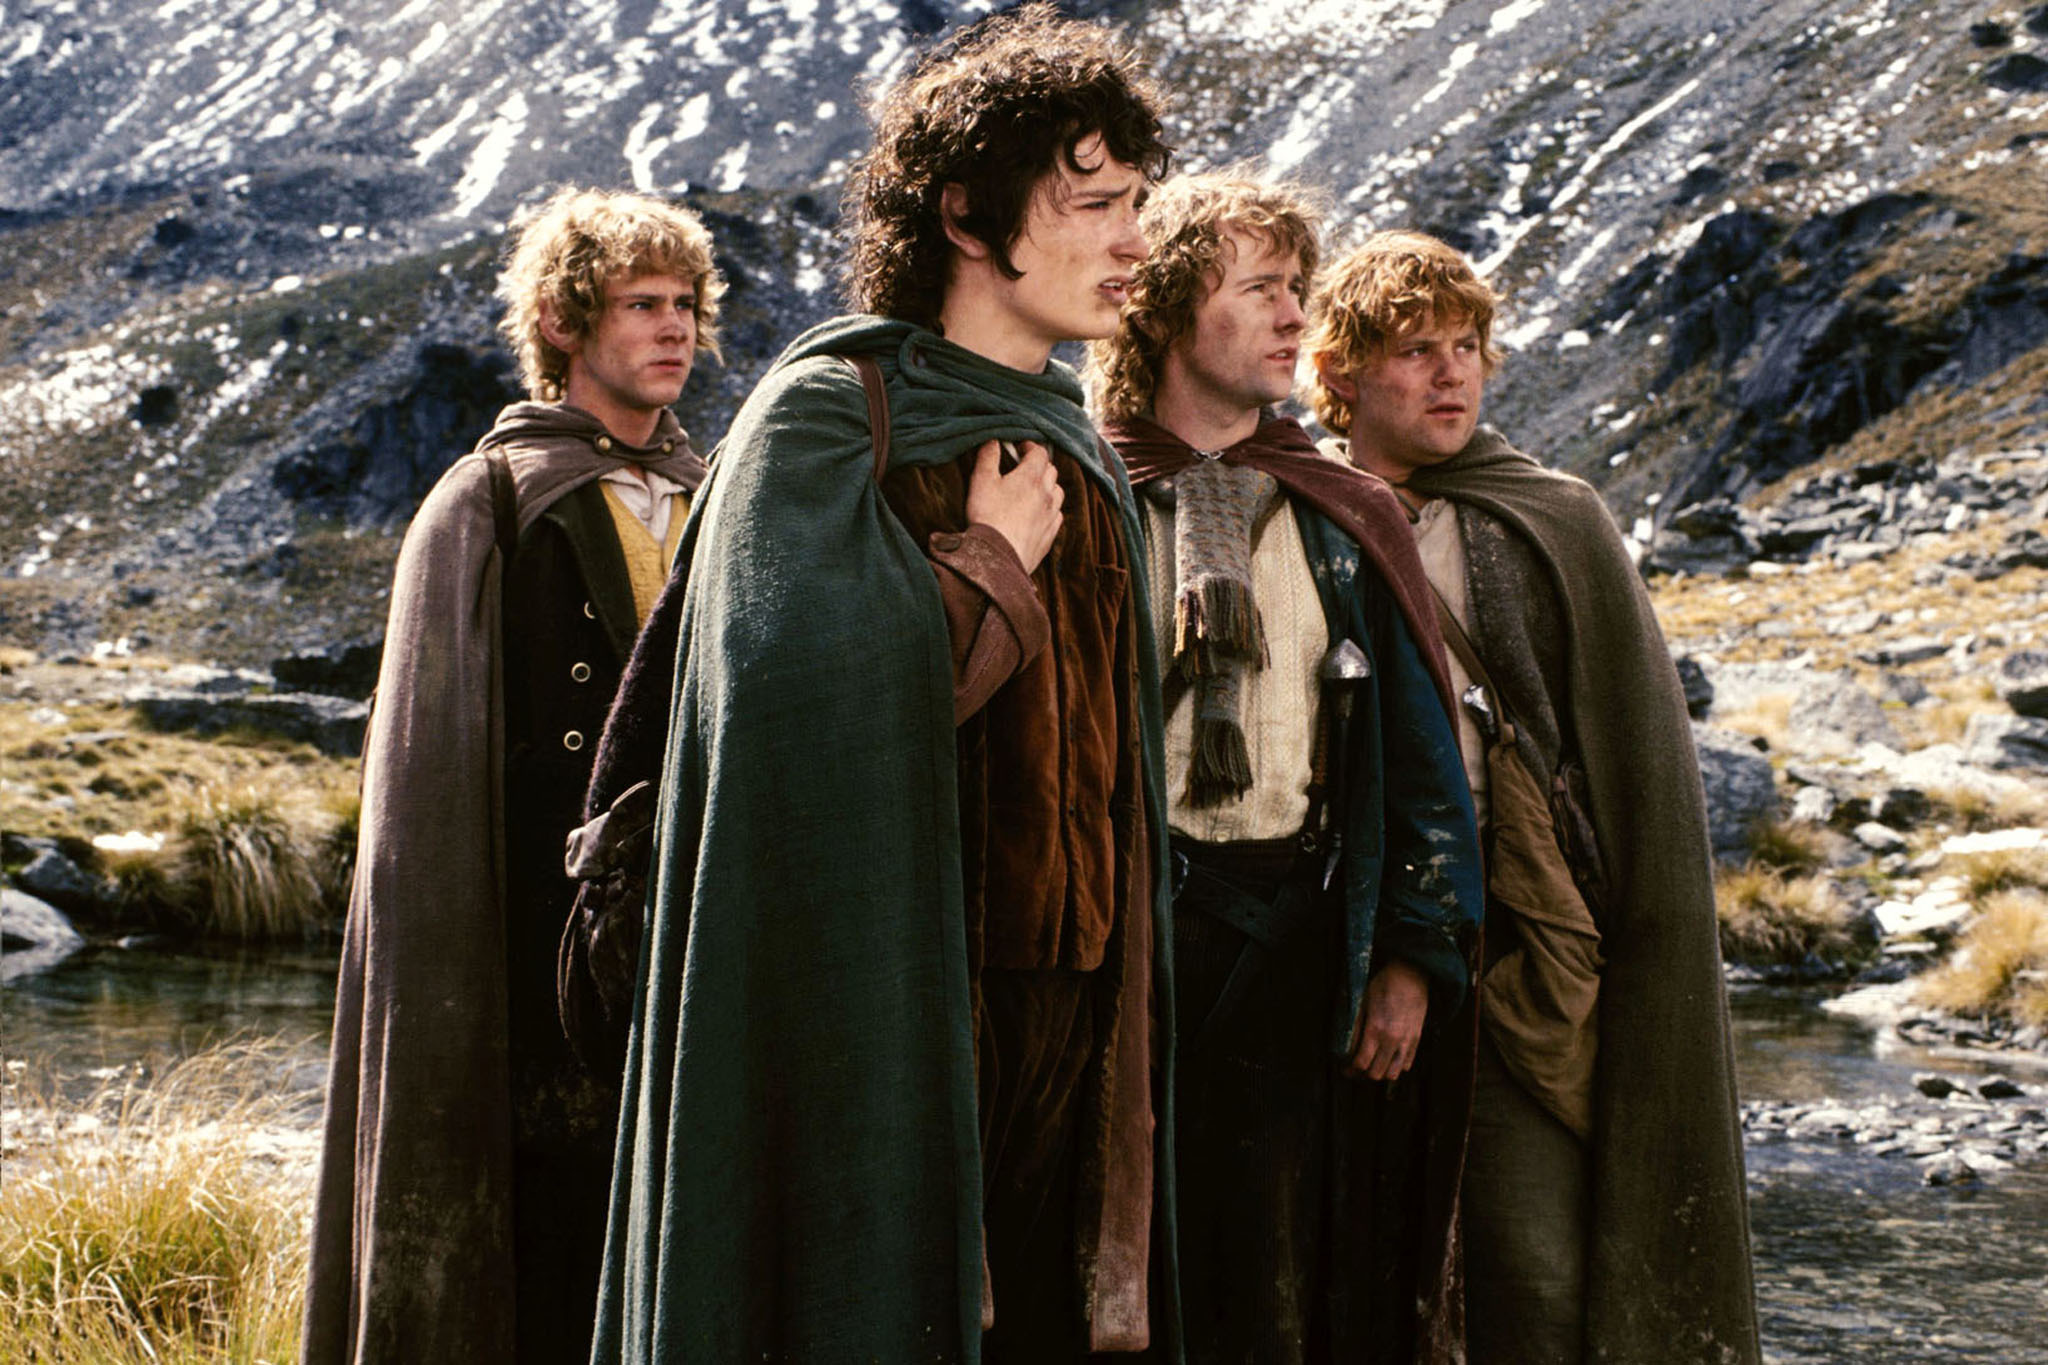 Eat like a Hobbit at Thalia Hall's 'Lord of the Rings'-themed dinners and movie screenings